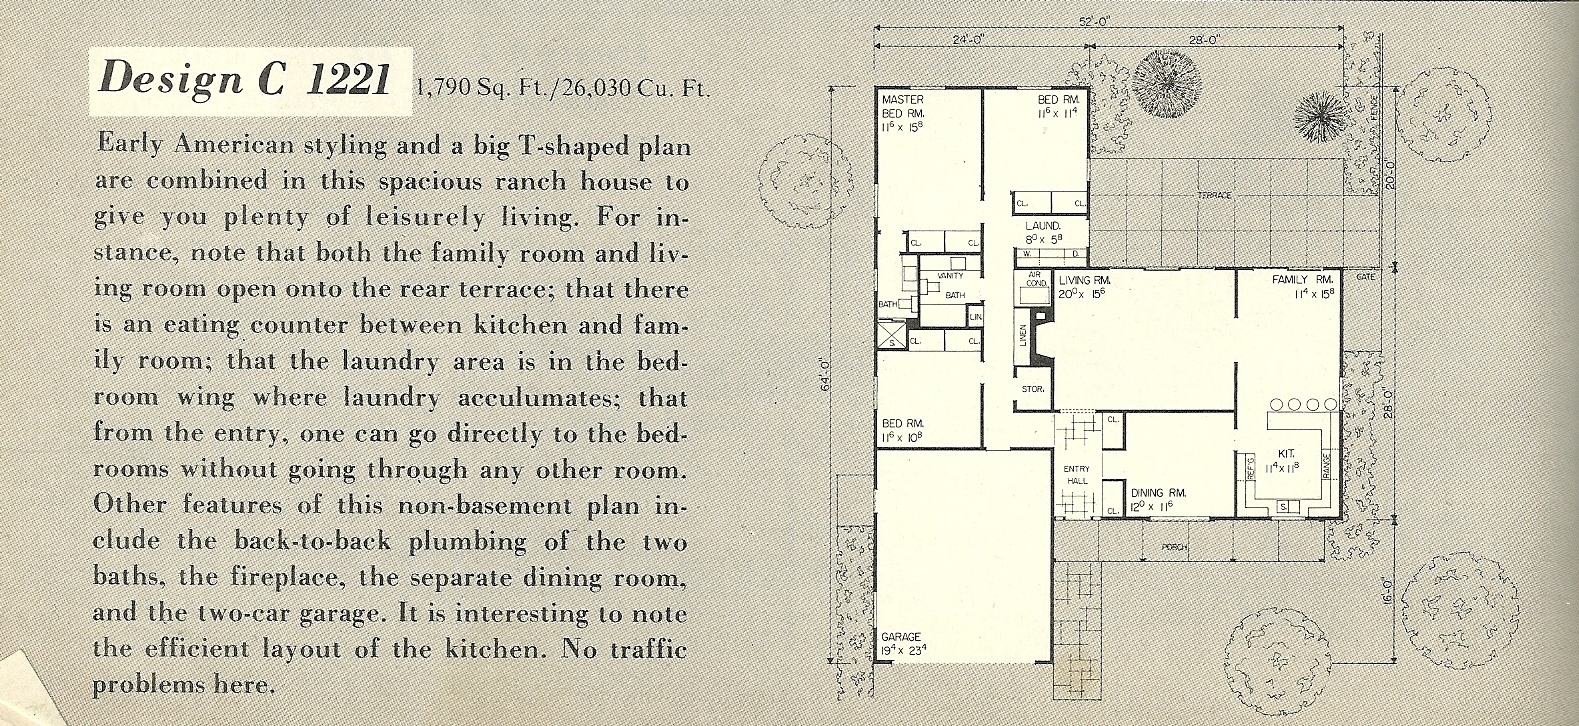 Vintage house plans 1221a antique alter ego for 1960 s home plans